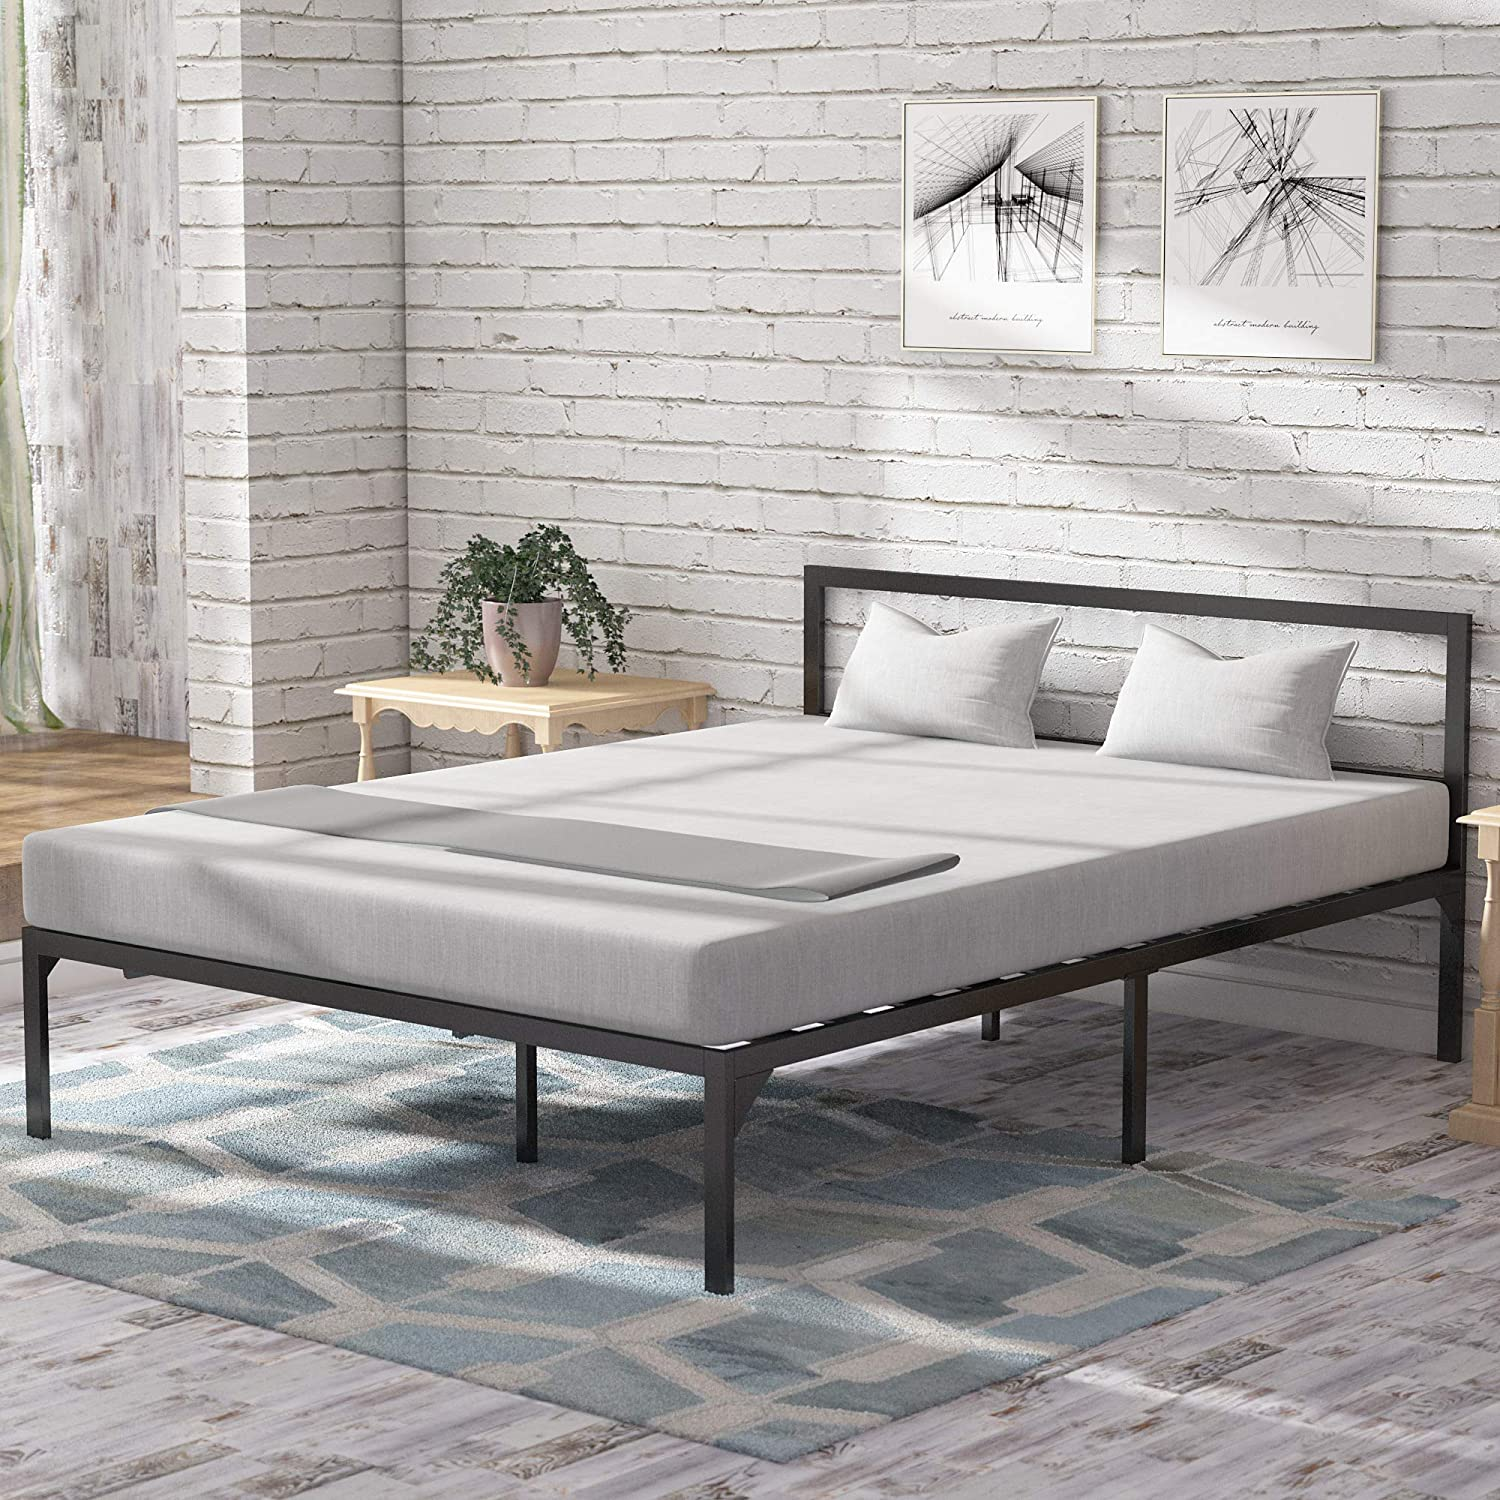 YITAHOME King Size Bed Frame with Headboard/14 Inch Platform/Strong Metal Slat Support/Mattress Foundation/No Box Spring Needed